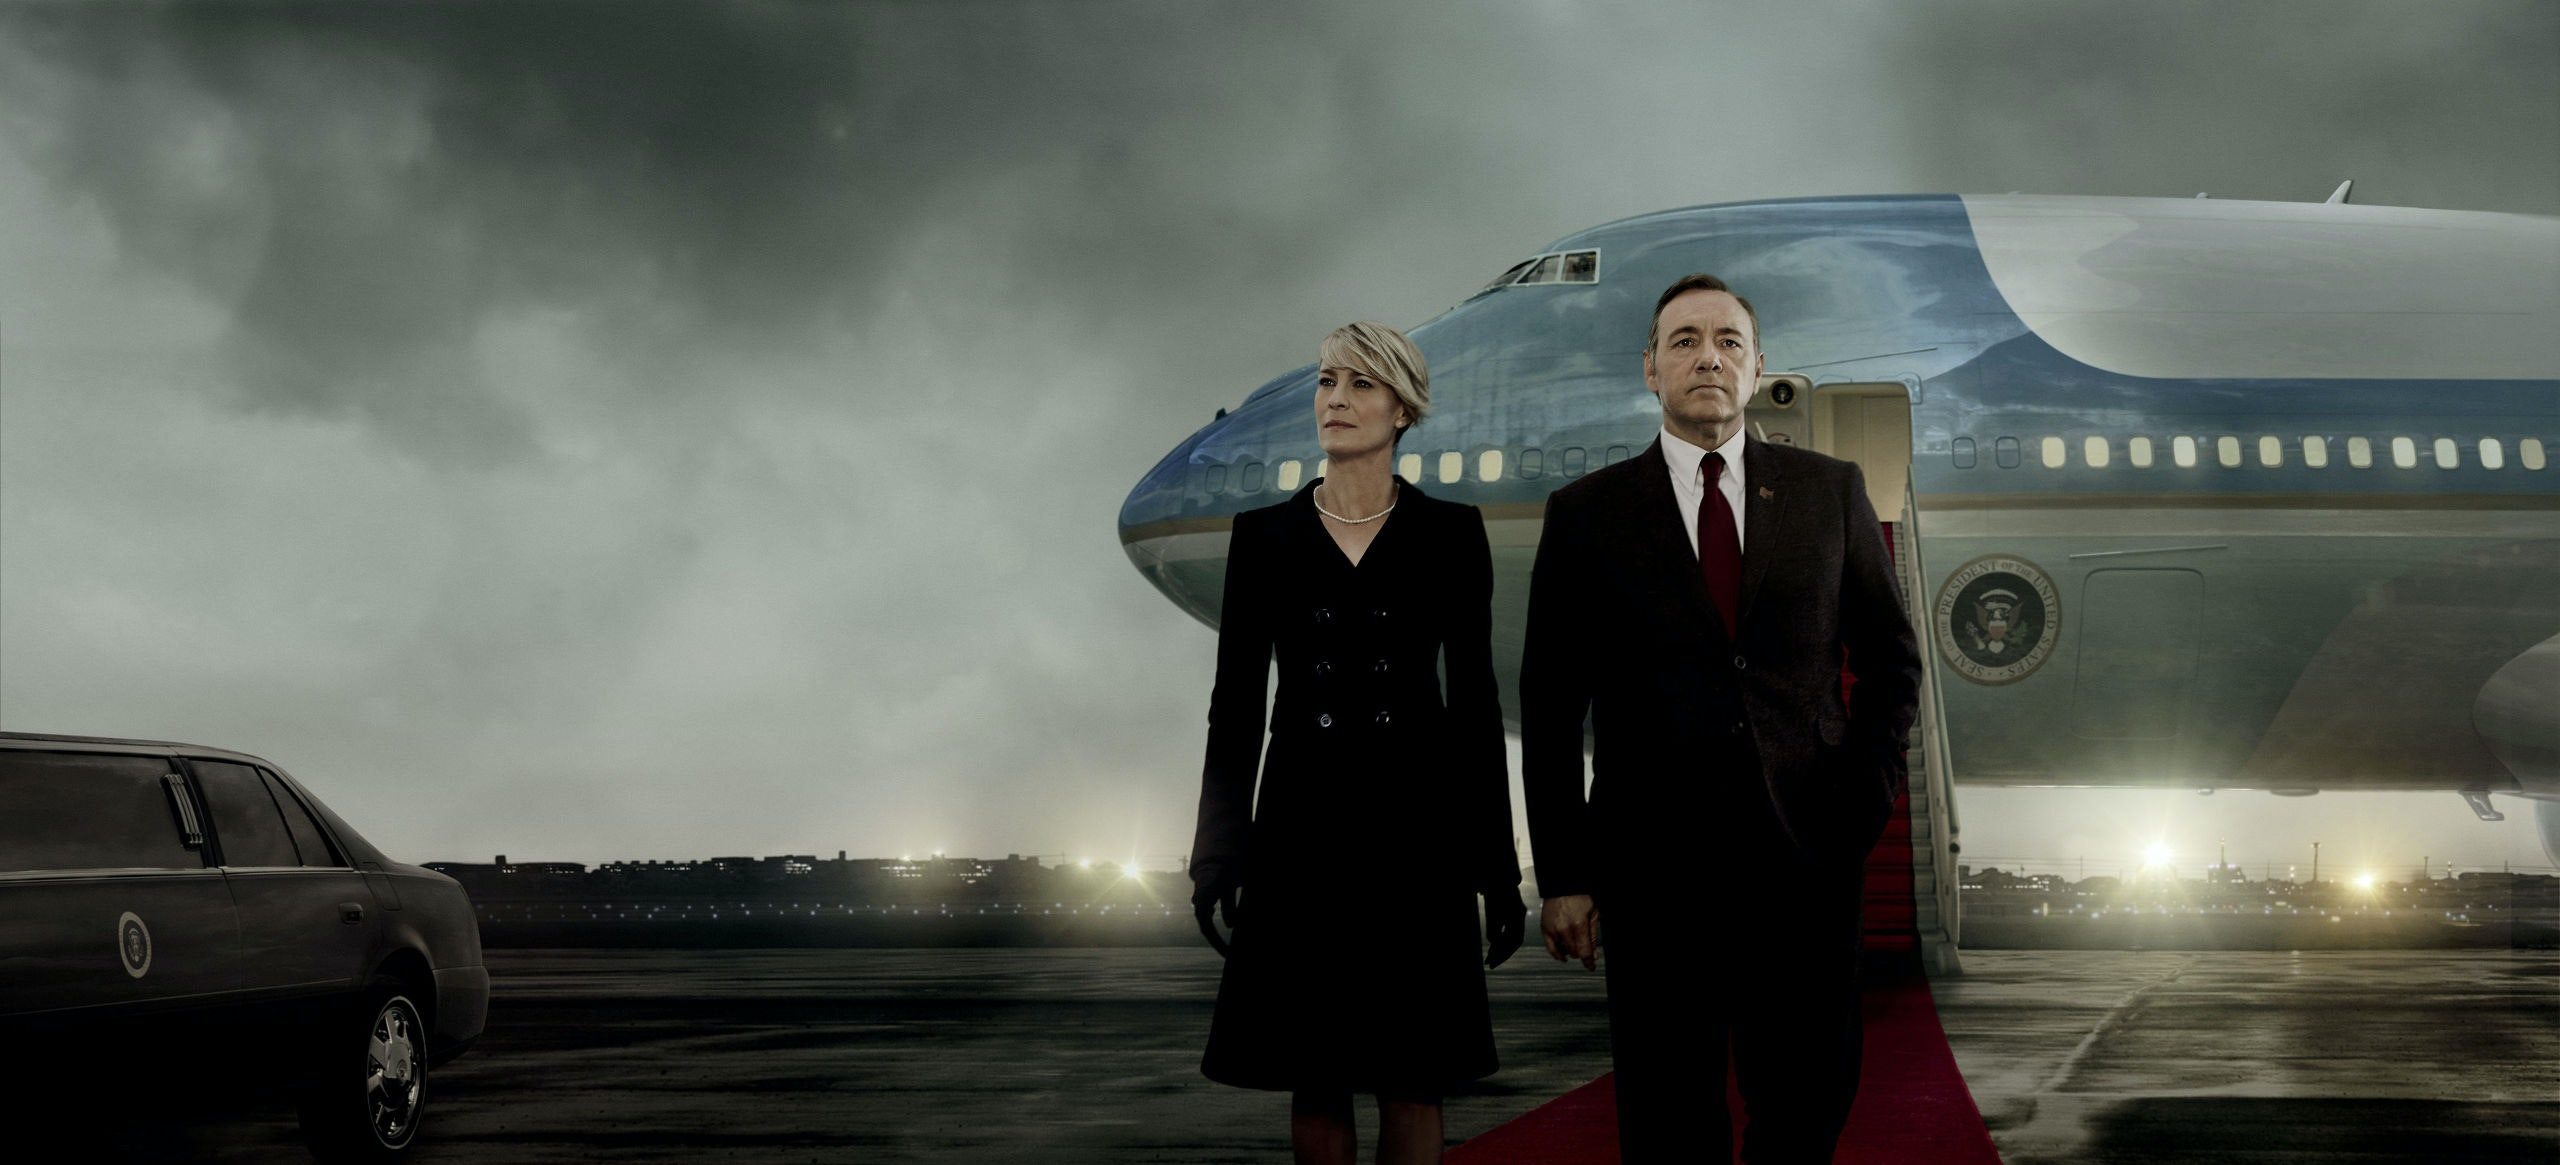 Kevin Spacey is Frank Underwood, Robin Wright is Claire Underwood in TV serie HOUSE OF CARDS : serie created by Beau Willimon (2013) starring Kevin Spacey, Robin Wright, Kate Mara; Drama; Thriller; serie internationale; serie; television; TV ; Frank Underwood; politic; Washington; american; 2015; Sony Pictures Television; Netflix; saison 3; Key Art; Photo G?n?rique sans Logo NOTE: this is a PR photo. Sunsetbox does not claim any Copyright or License in the attached material. Fees charged by Sunsetbox are for Sunsetbox's services only, and do not, nor are they intended to, convey to the user any ownership of Copyright or License in the material. By publishing this material, the user expressly agrees to indemnify and to hold Sunsetbox harmless from any claims, demands, or causes of action arising out of or connected in any way with user's publication of the material